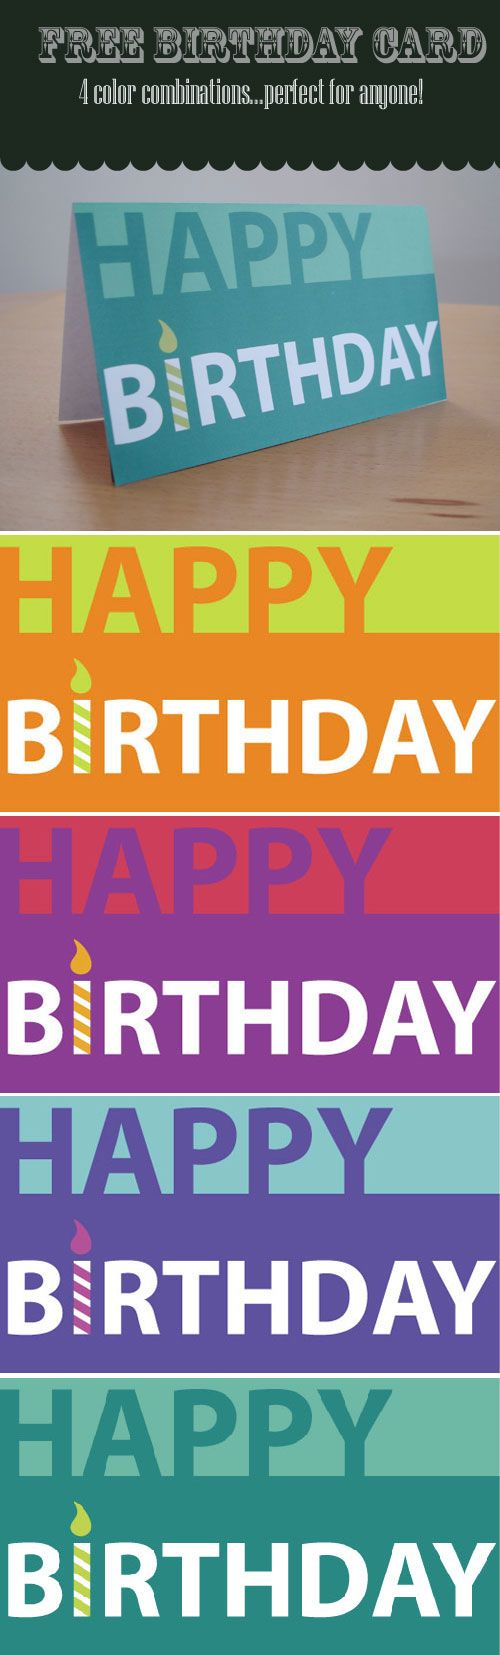 Free Printable Birthday card (must use Adobe Reader, not Mac programs, to print)